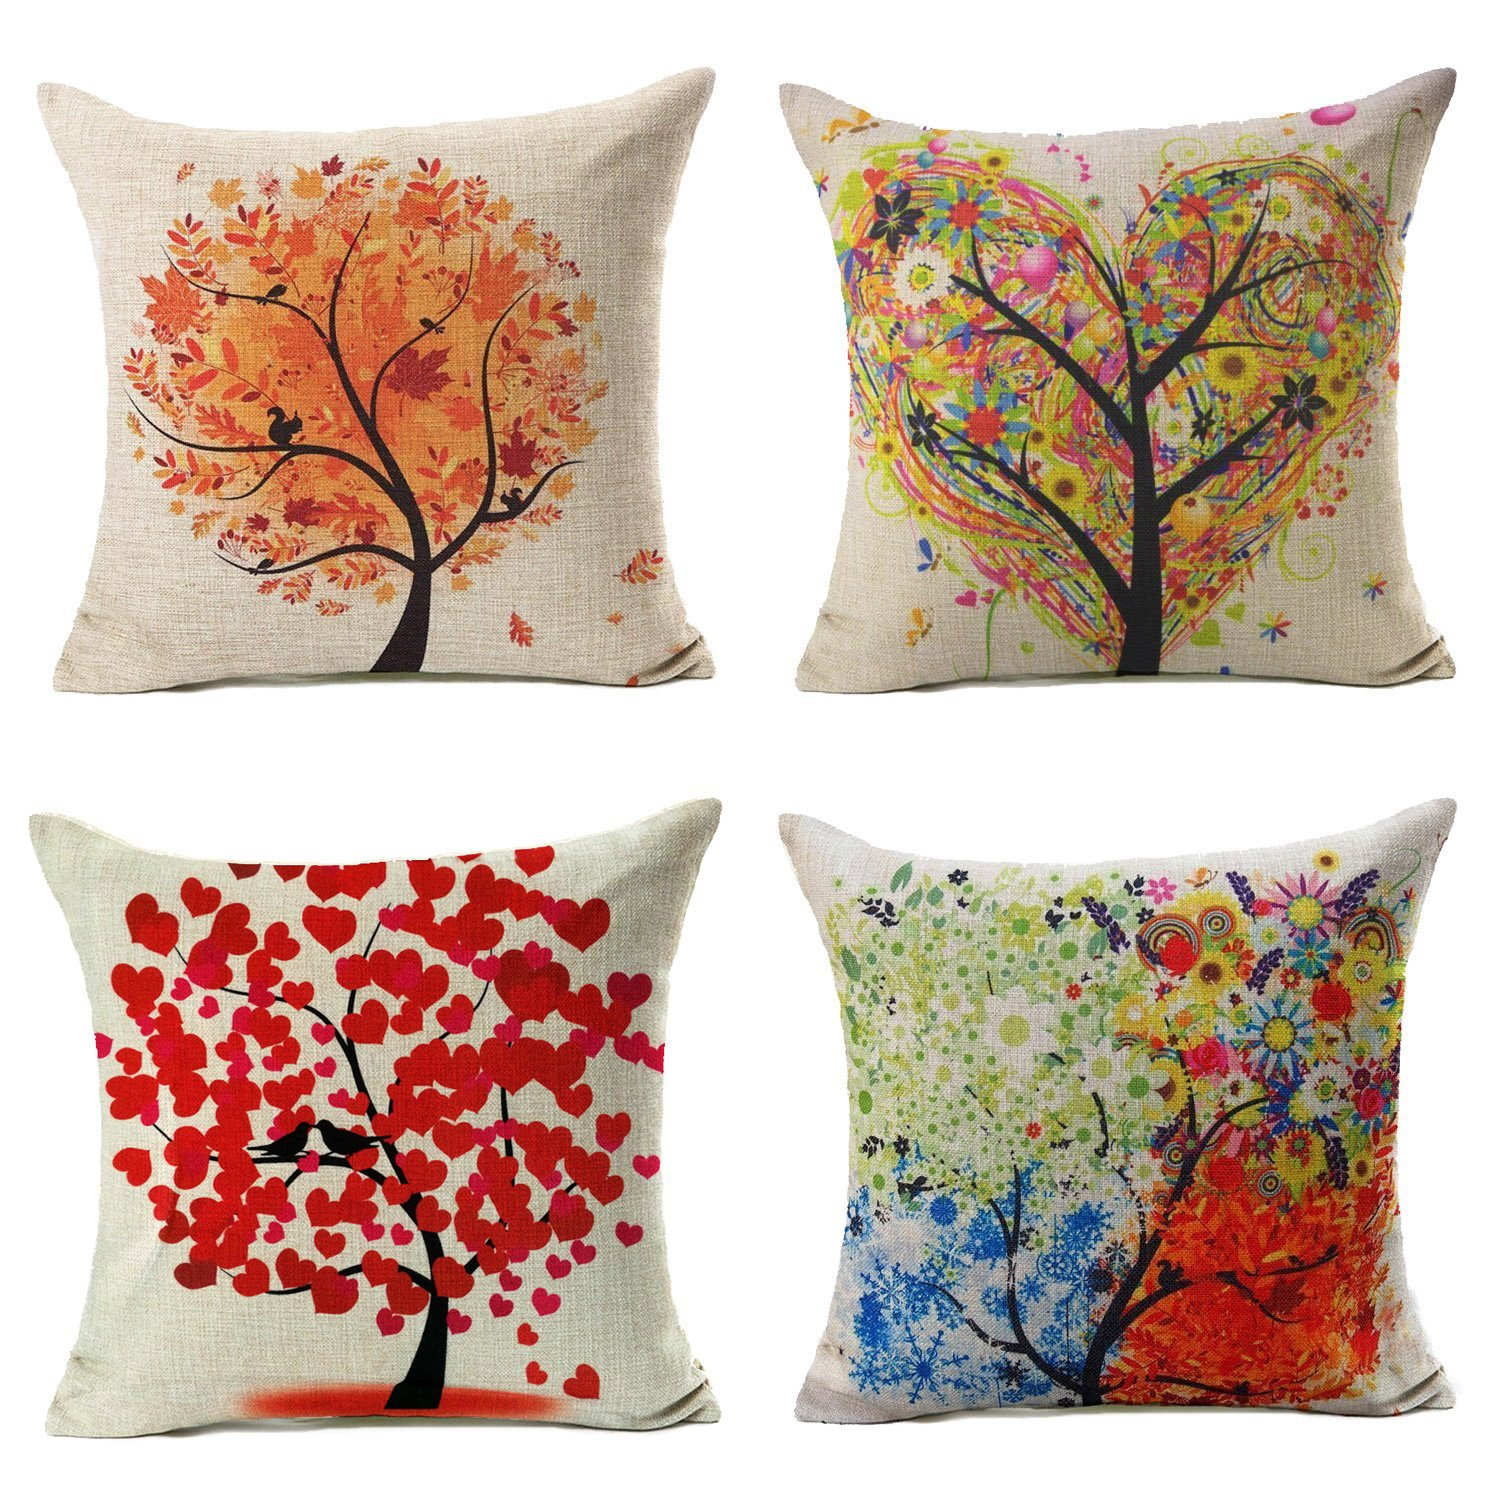 cover plant jakarta cushion next bali ikea uk pillow argos throw dunelm ebay wool cases home highland decor covers nordic in effect check autumn green full size pillows onl leaf made pair tartan watercolor online